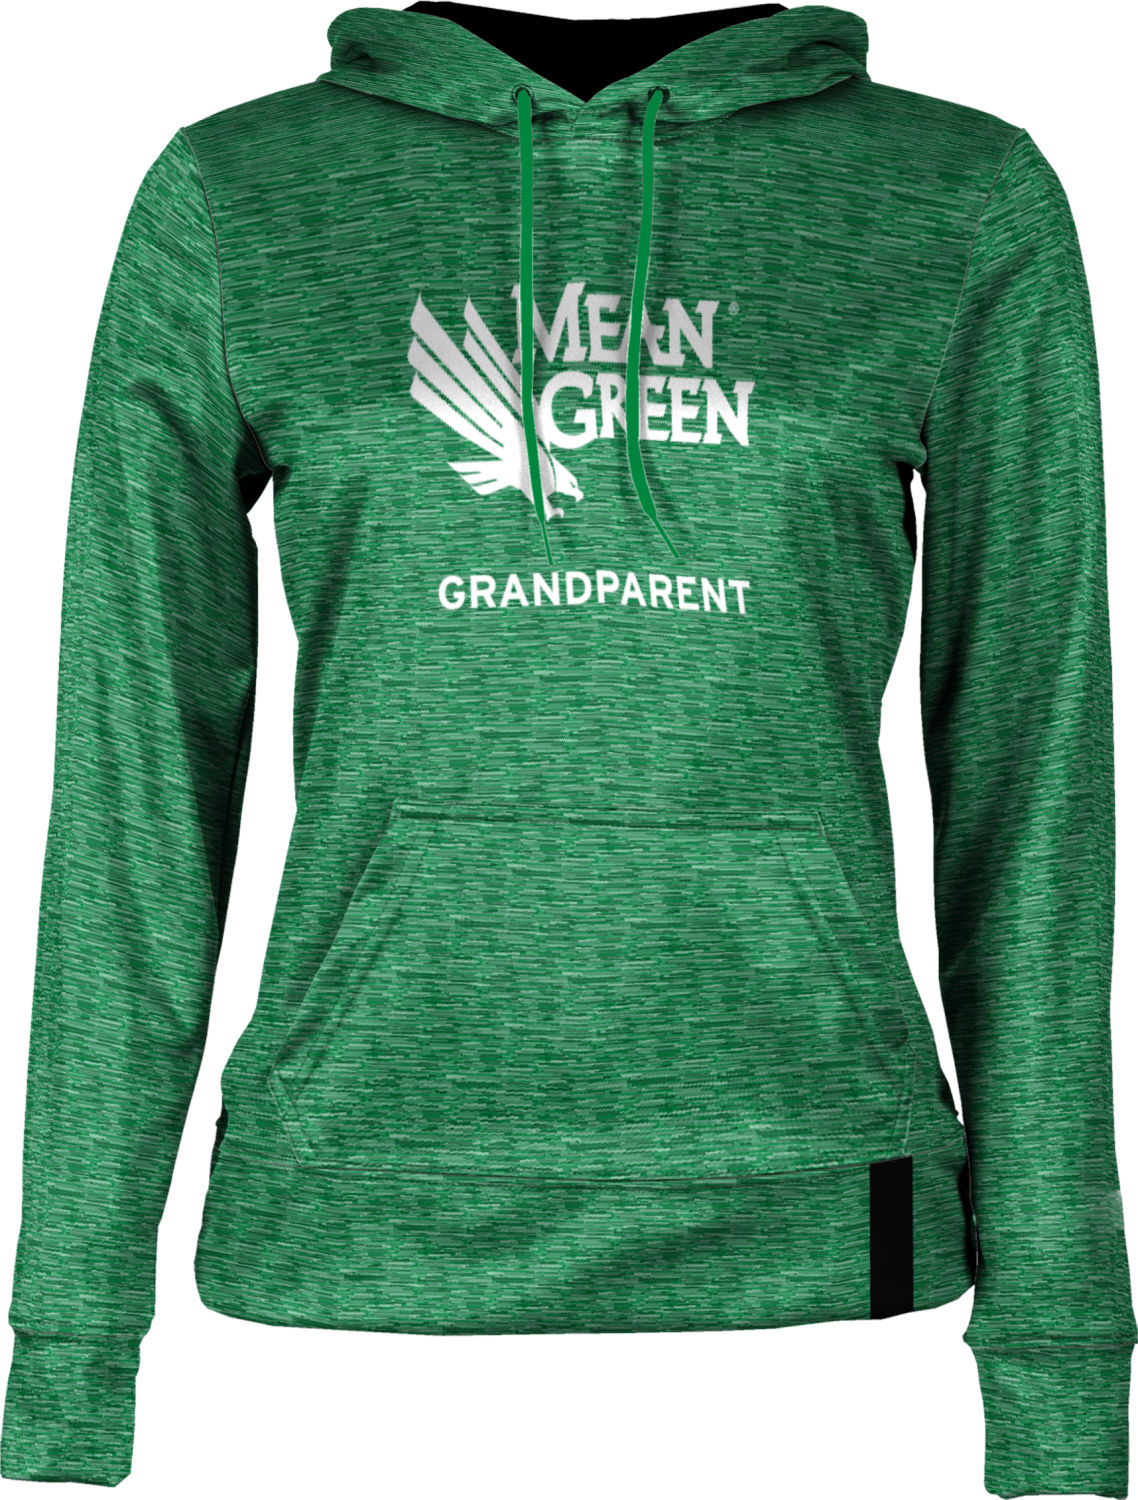 Women's ProSphere Sublimated Hoodie - Grandparent